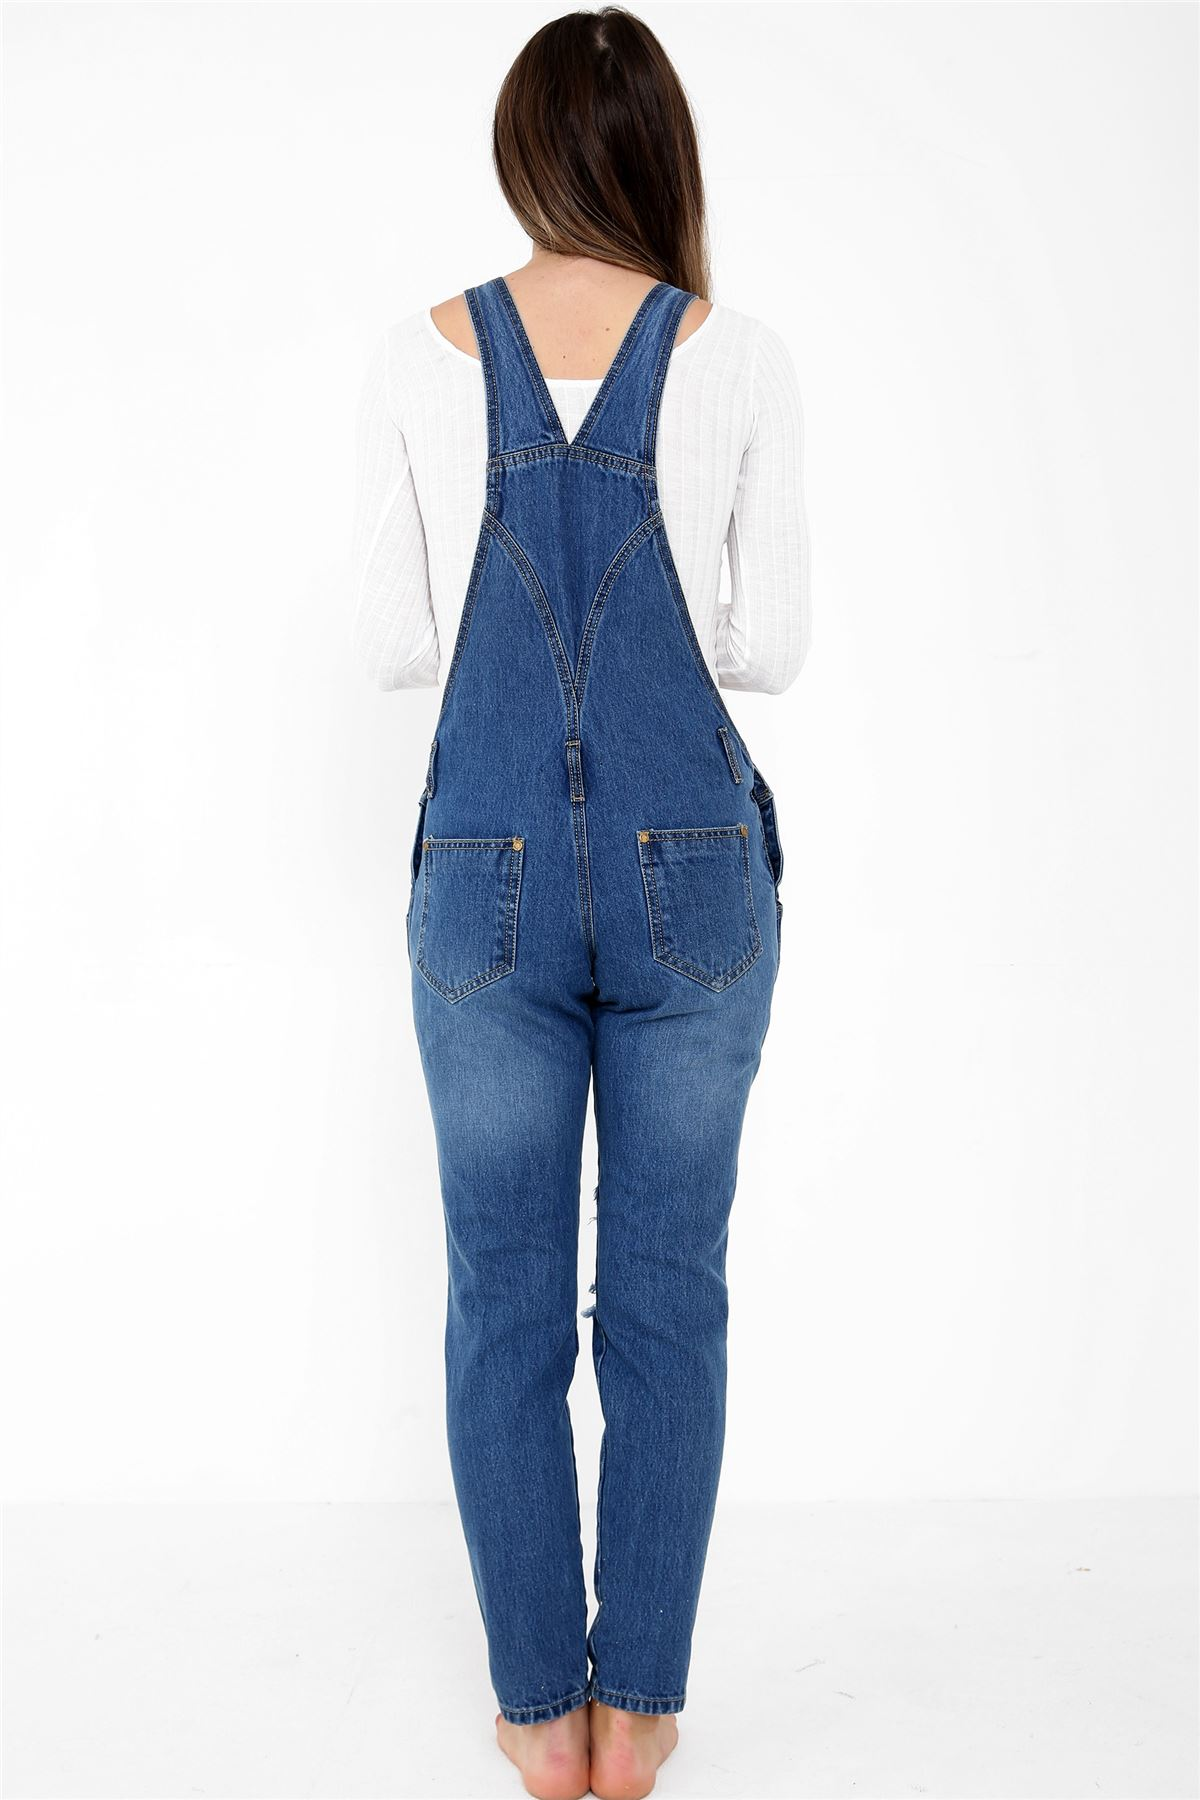 0f389bfaf3 ... Women Knee Ripped Denim Pinafore Dungaree Dress Overall Playsuit  Jumpsuit Blue 10. About this product. Last one. Picture 1 of 4  Picture 2  of 4  Picture ...